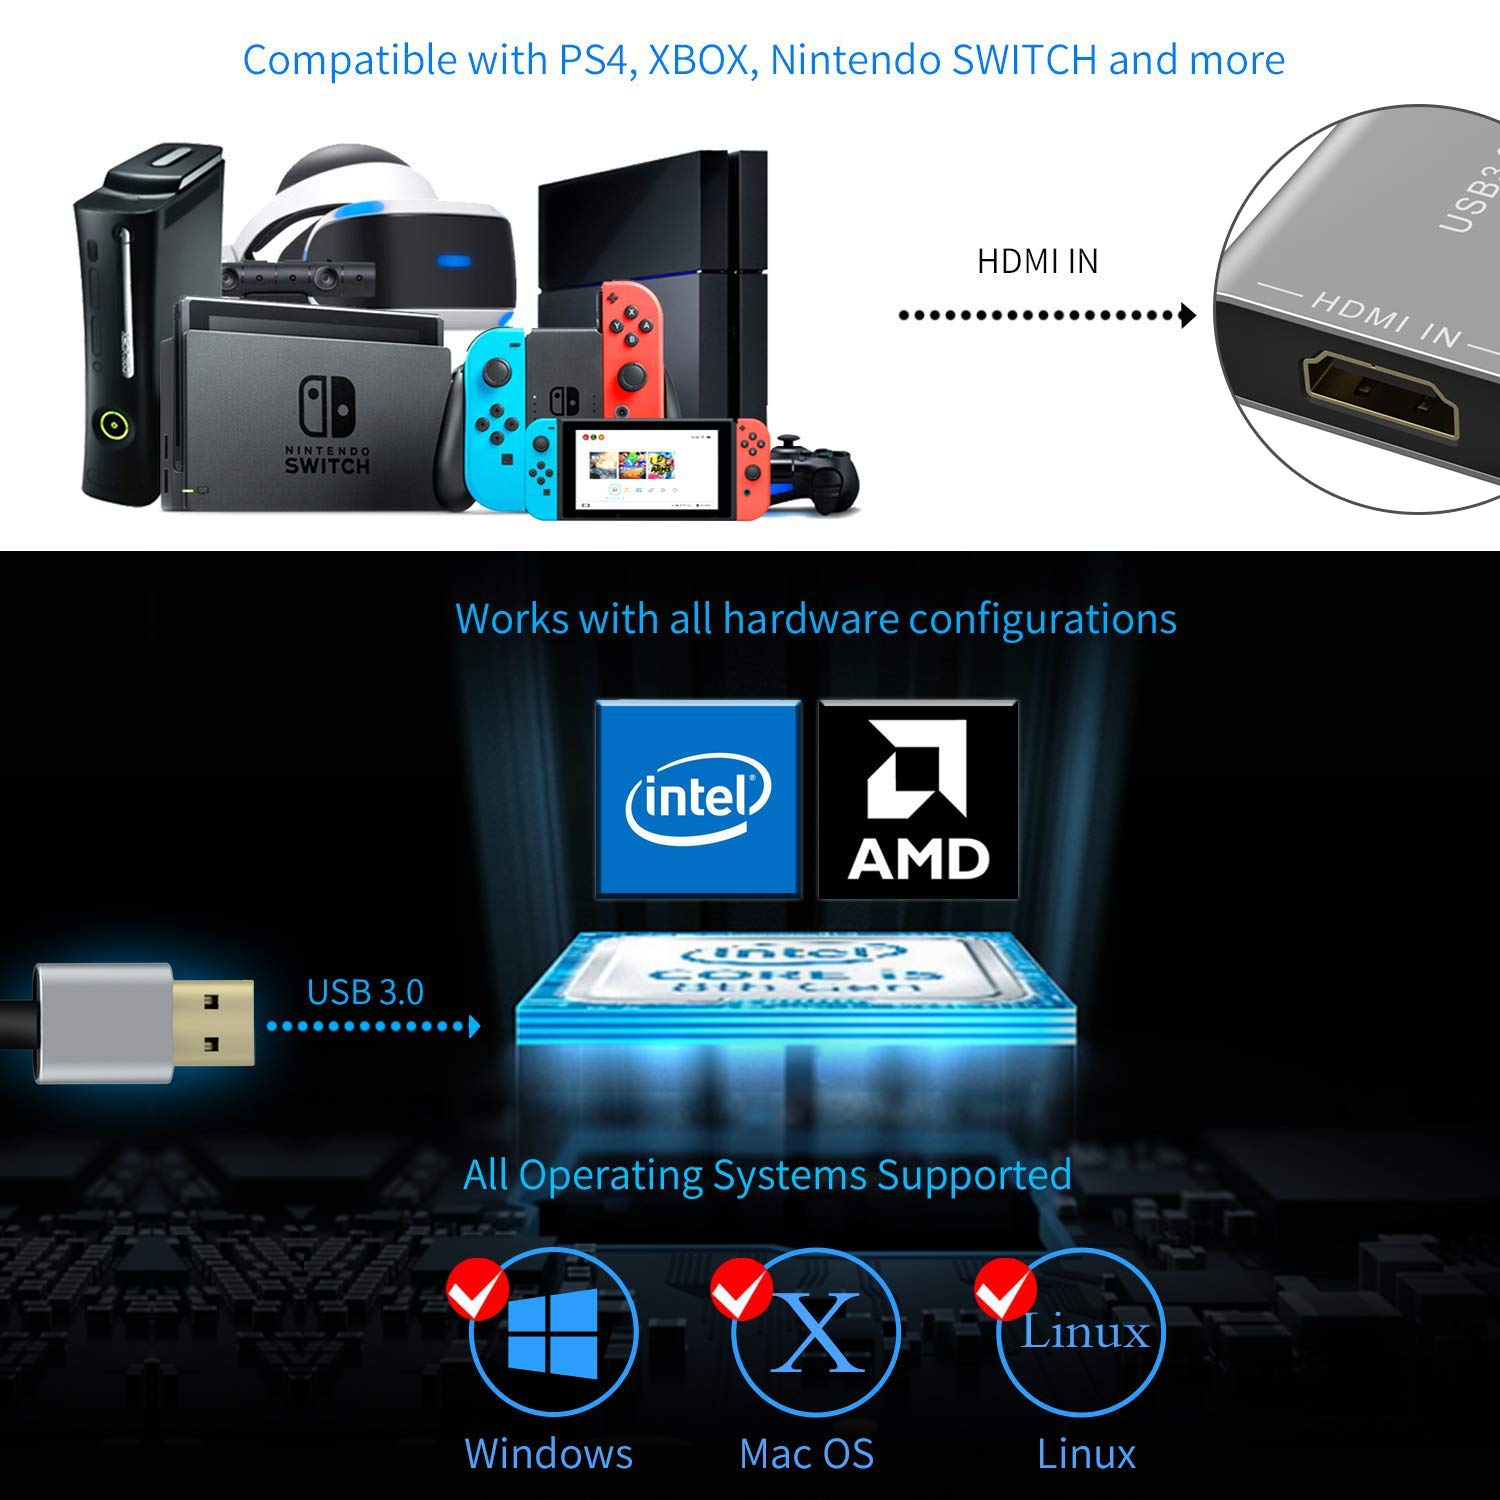 HDMI Game Video Capture Card, USB 3 0 Capture Device, 1080P 60fps Video &  Audio Grabber, Broadcast Live and Record for Xbox One PS4 Wii U Nintendo